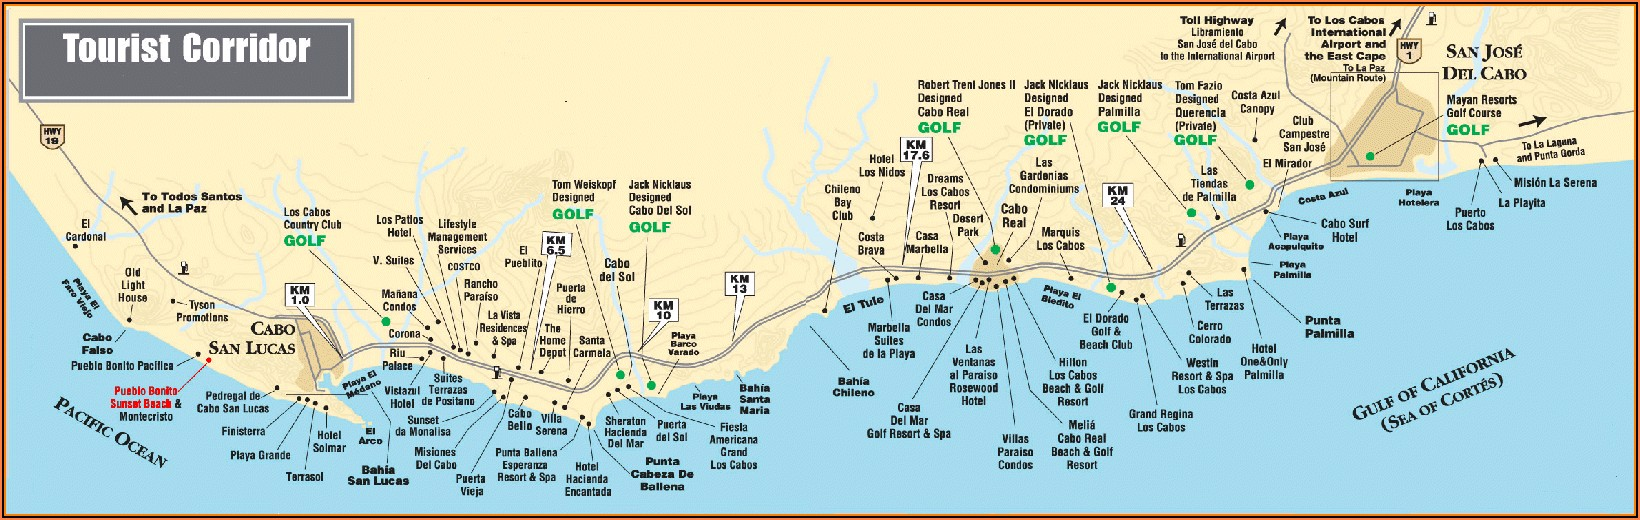 Los Cabos Hotels Map